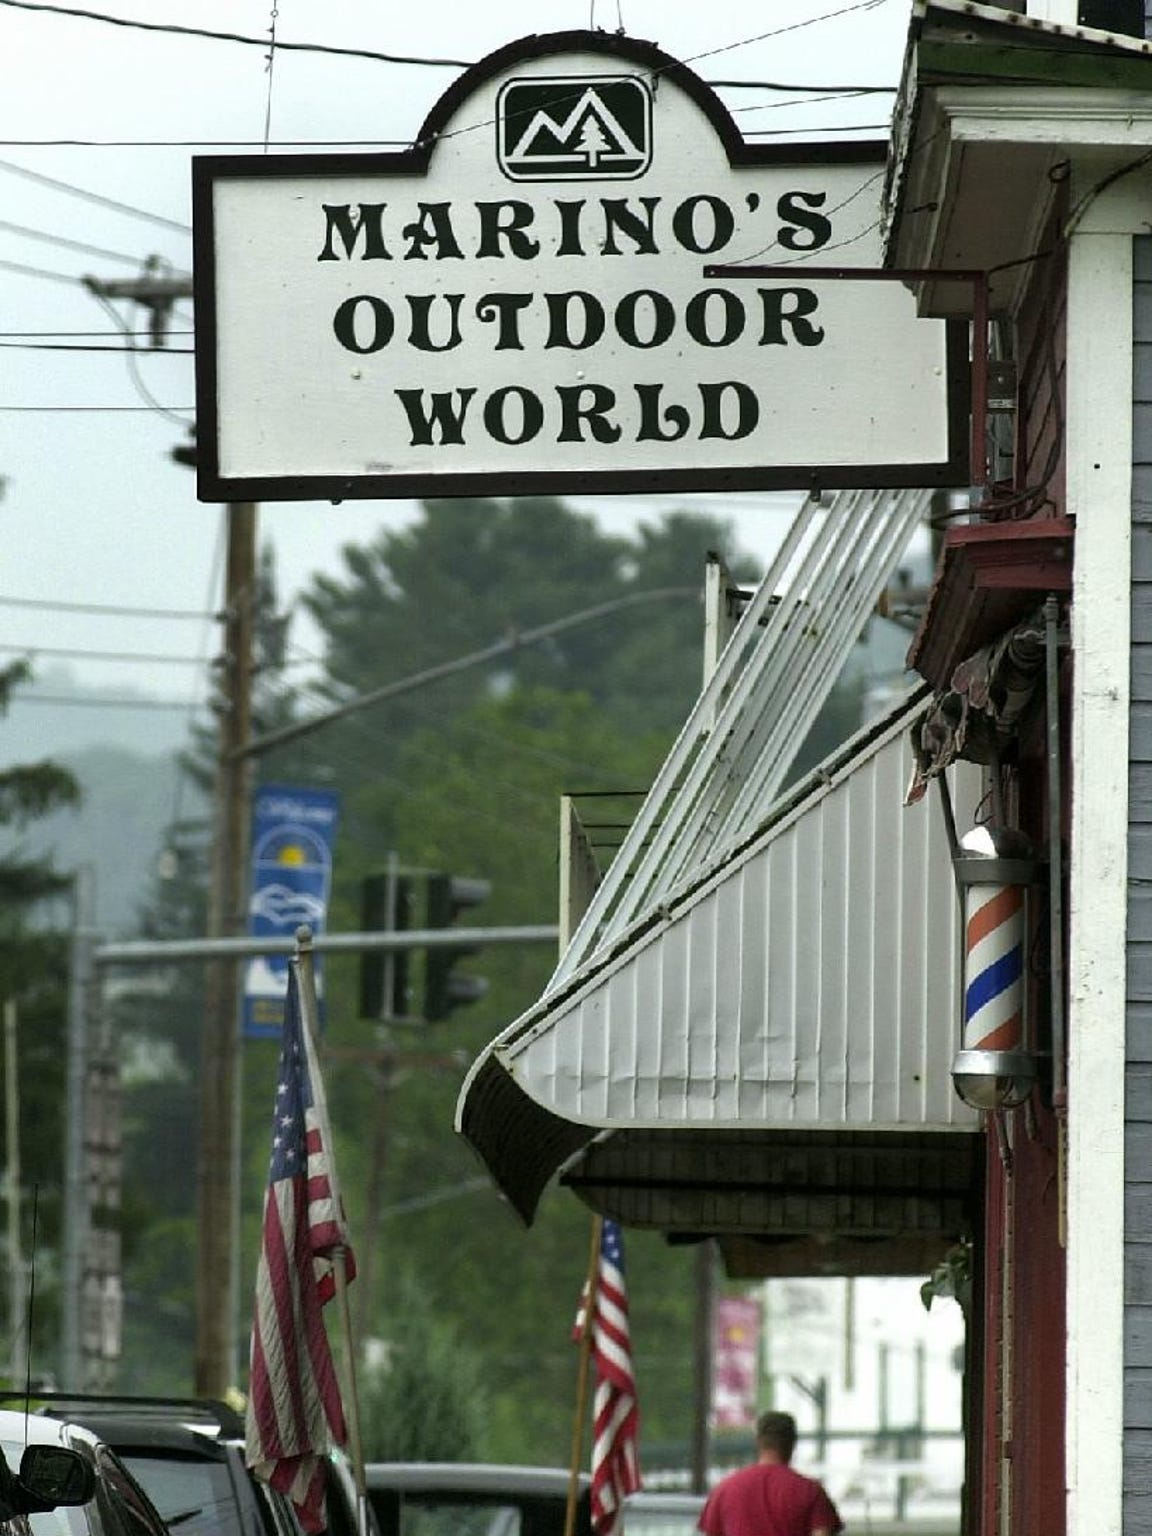 Marino's Outdoor World in Hancock was the site of a